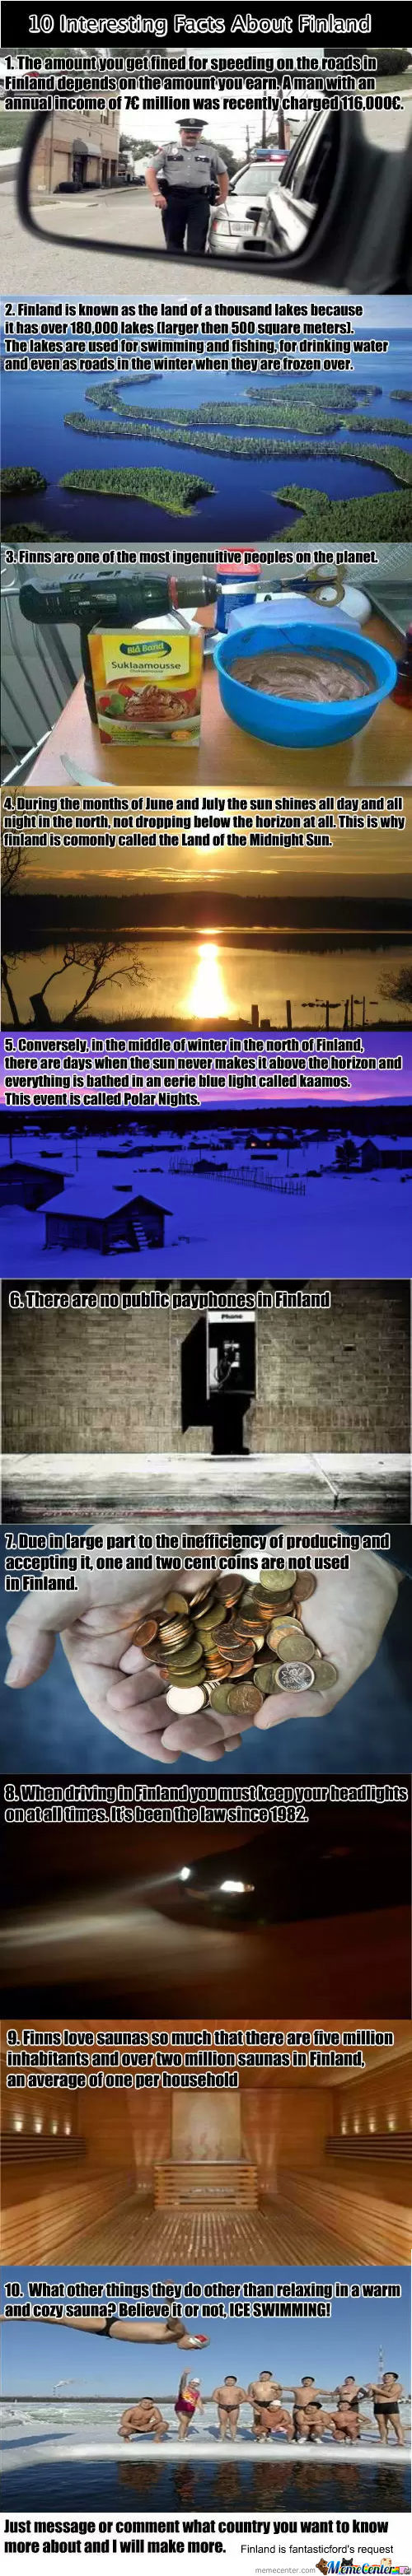 10 Interesting Facts About Finland